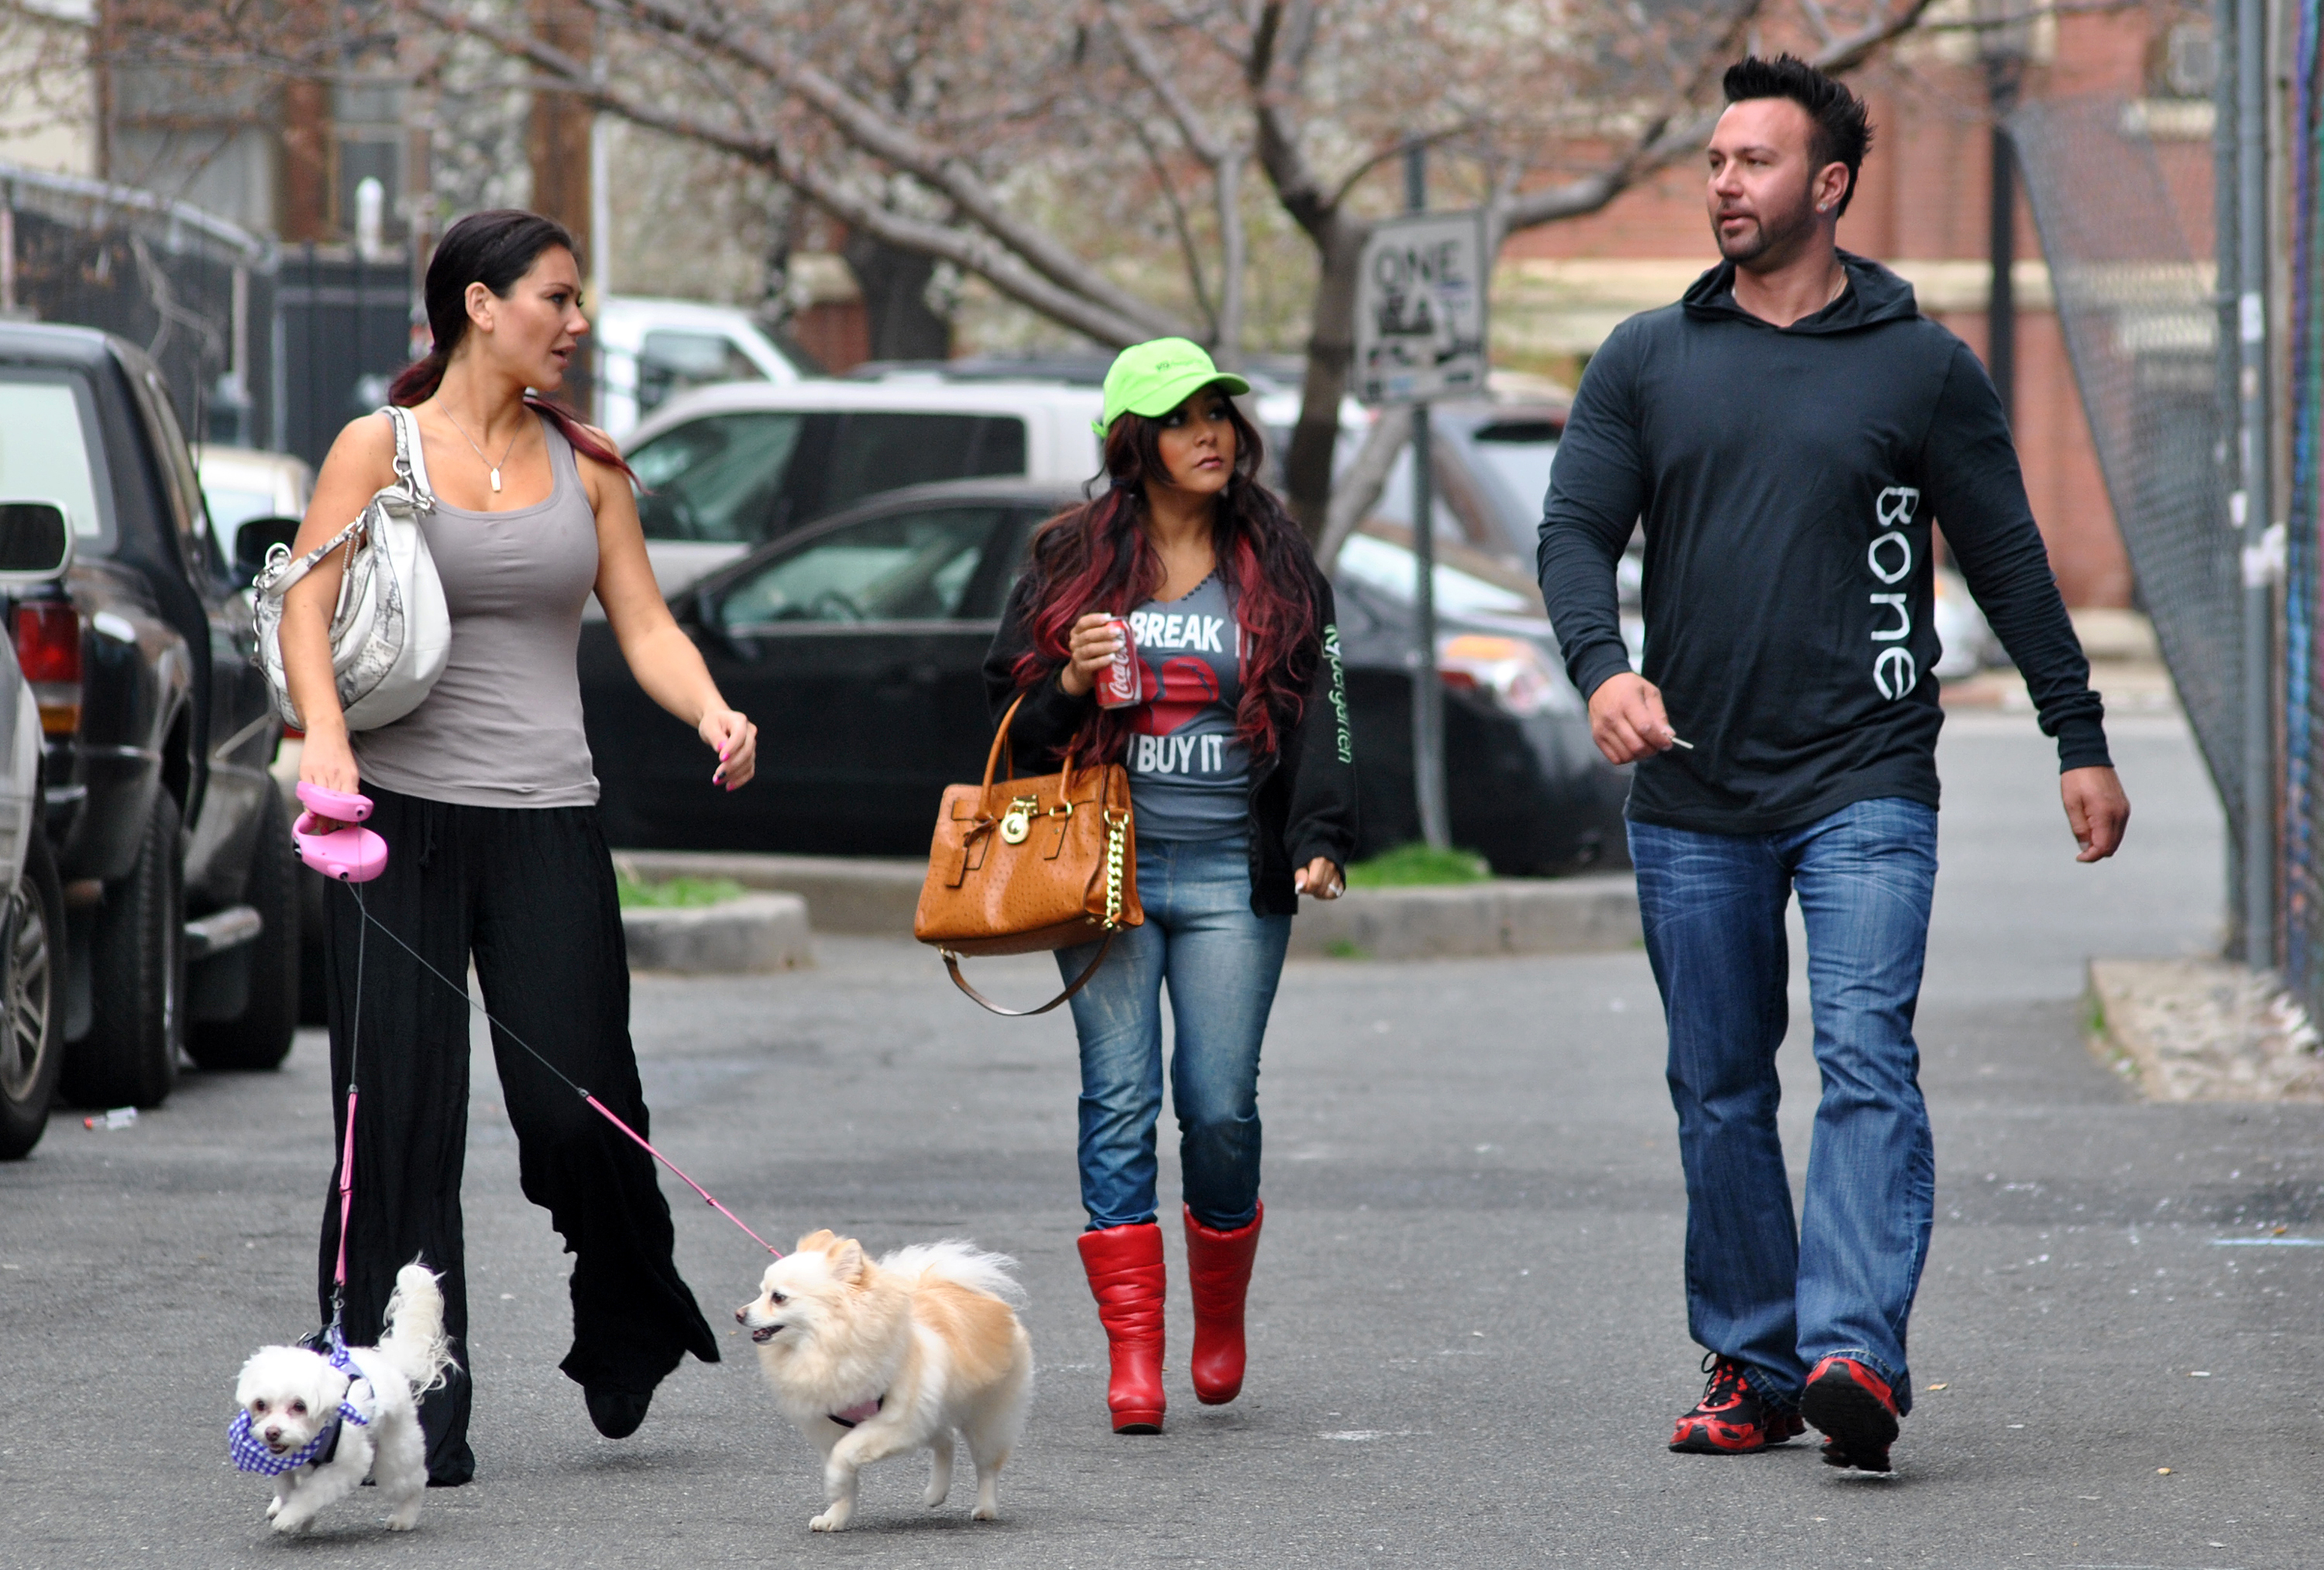 Roger Mathews Slams Snooki Amid Drama With Jen Farley - Jenni 'JWoww' Farley, Nicole 'Snooki' Polizzi and Roger Mathews on location for 'Snooki and JWoww vs. the World' on March 21, 2012 in Jersey City, New Jersey.